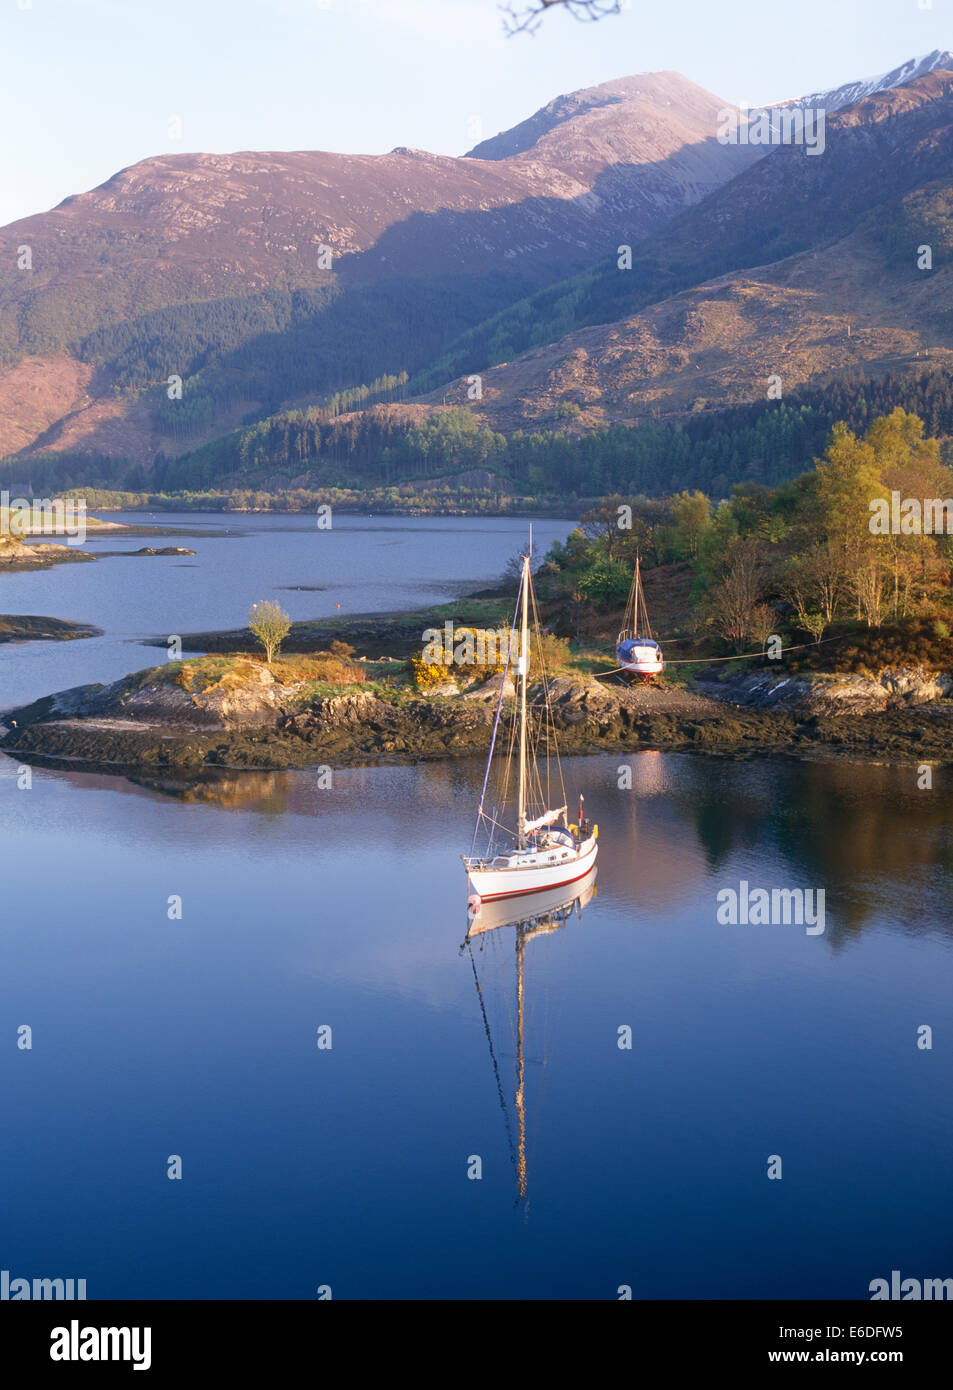 loch leven ballachulish highlands scotland uk - Stock Image